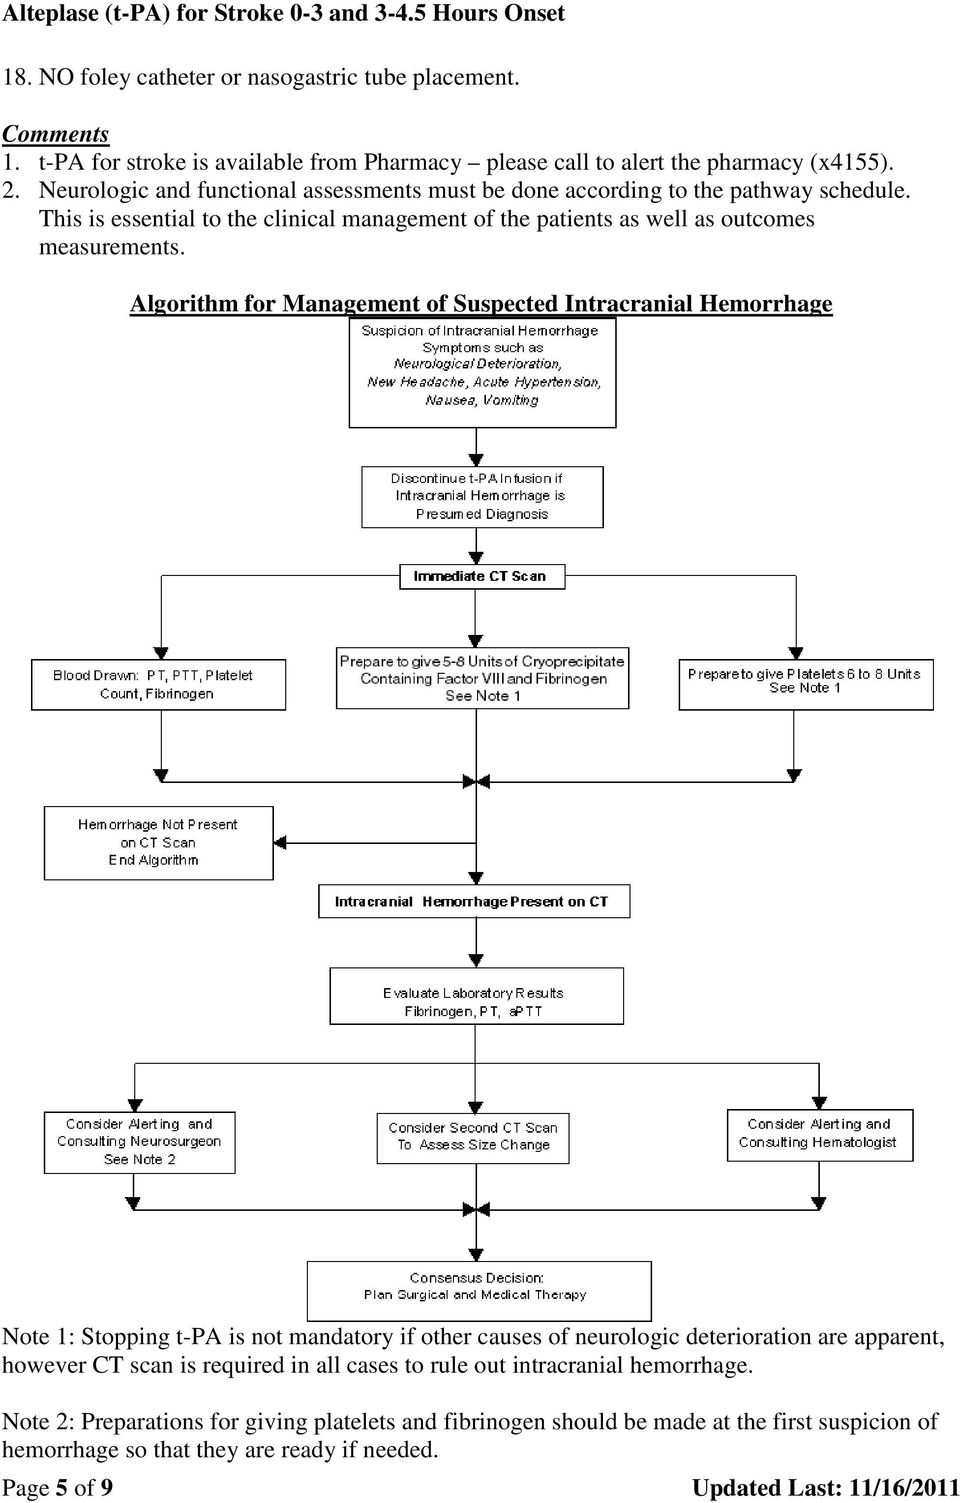 Algorithm for Management of Suspected Intracranial Hemorrhage Note 1: Stopping t-pa is not mandatory if other causes of neurologic deterioration are apparent, however CT scan is required